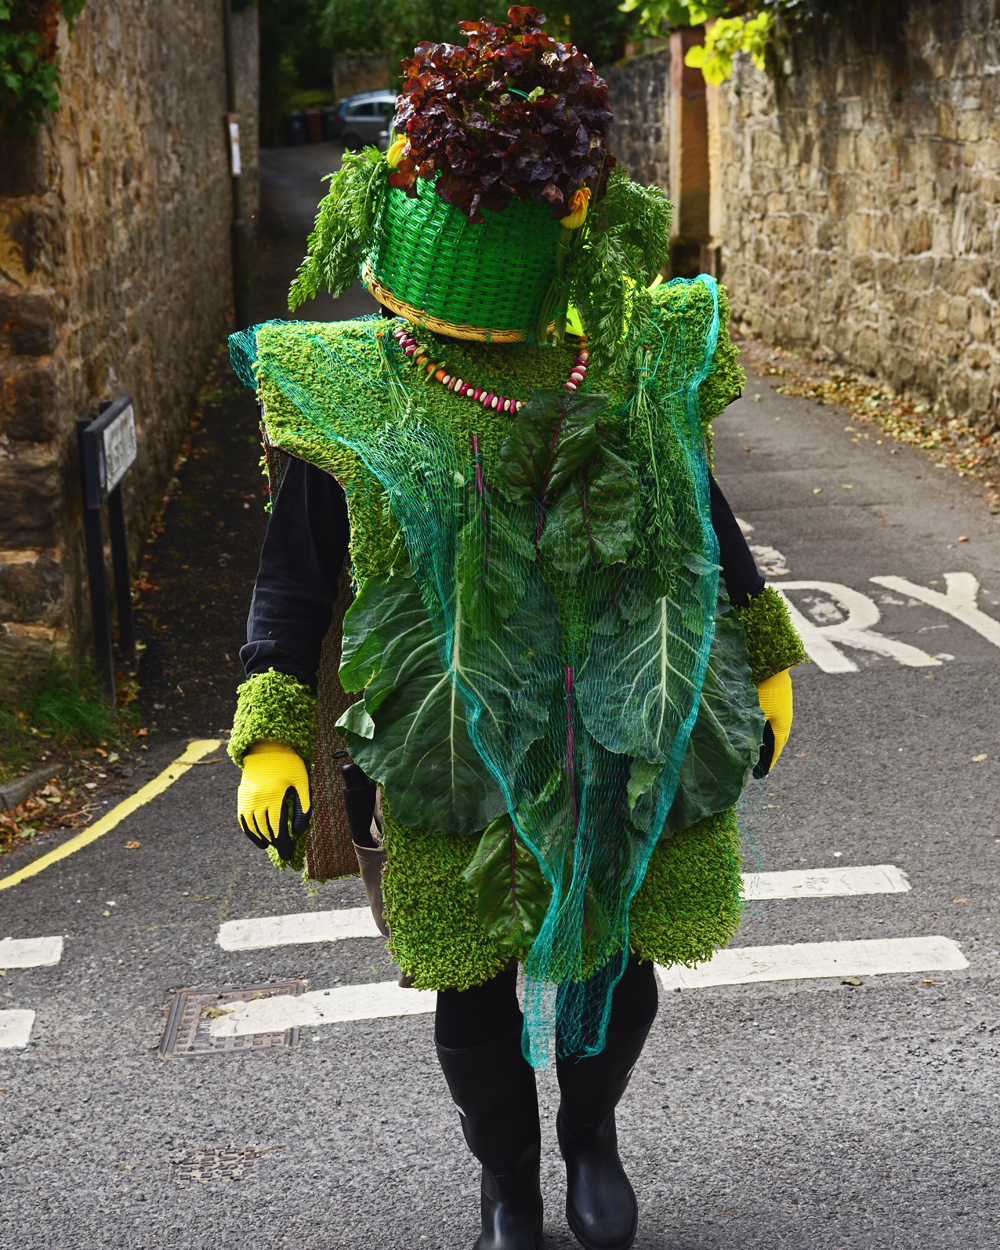 A green, full body  costume made of wicker, green grocer's artificial grass, and fresh plants and vegetables.